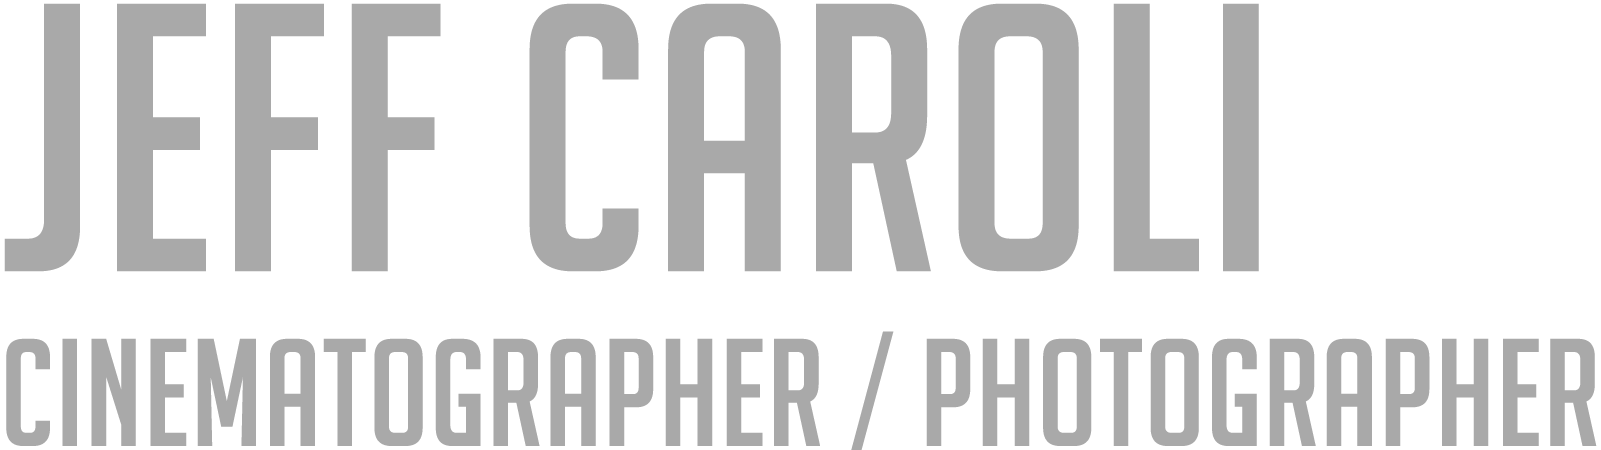 Jeff Caroli, Cinematographer / Photographer